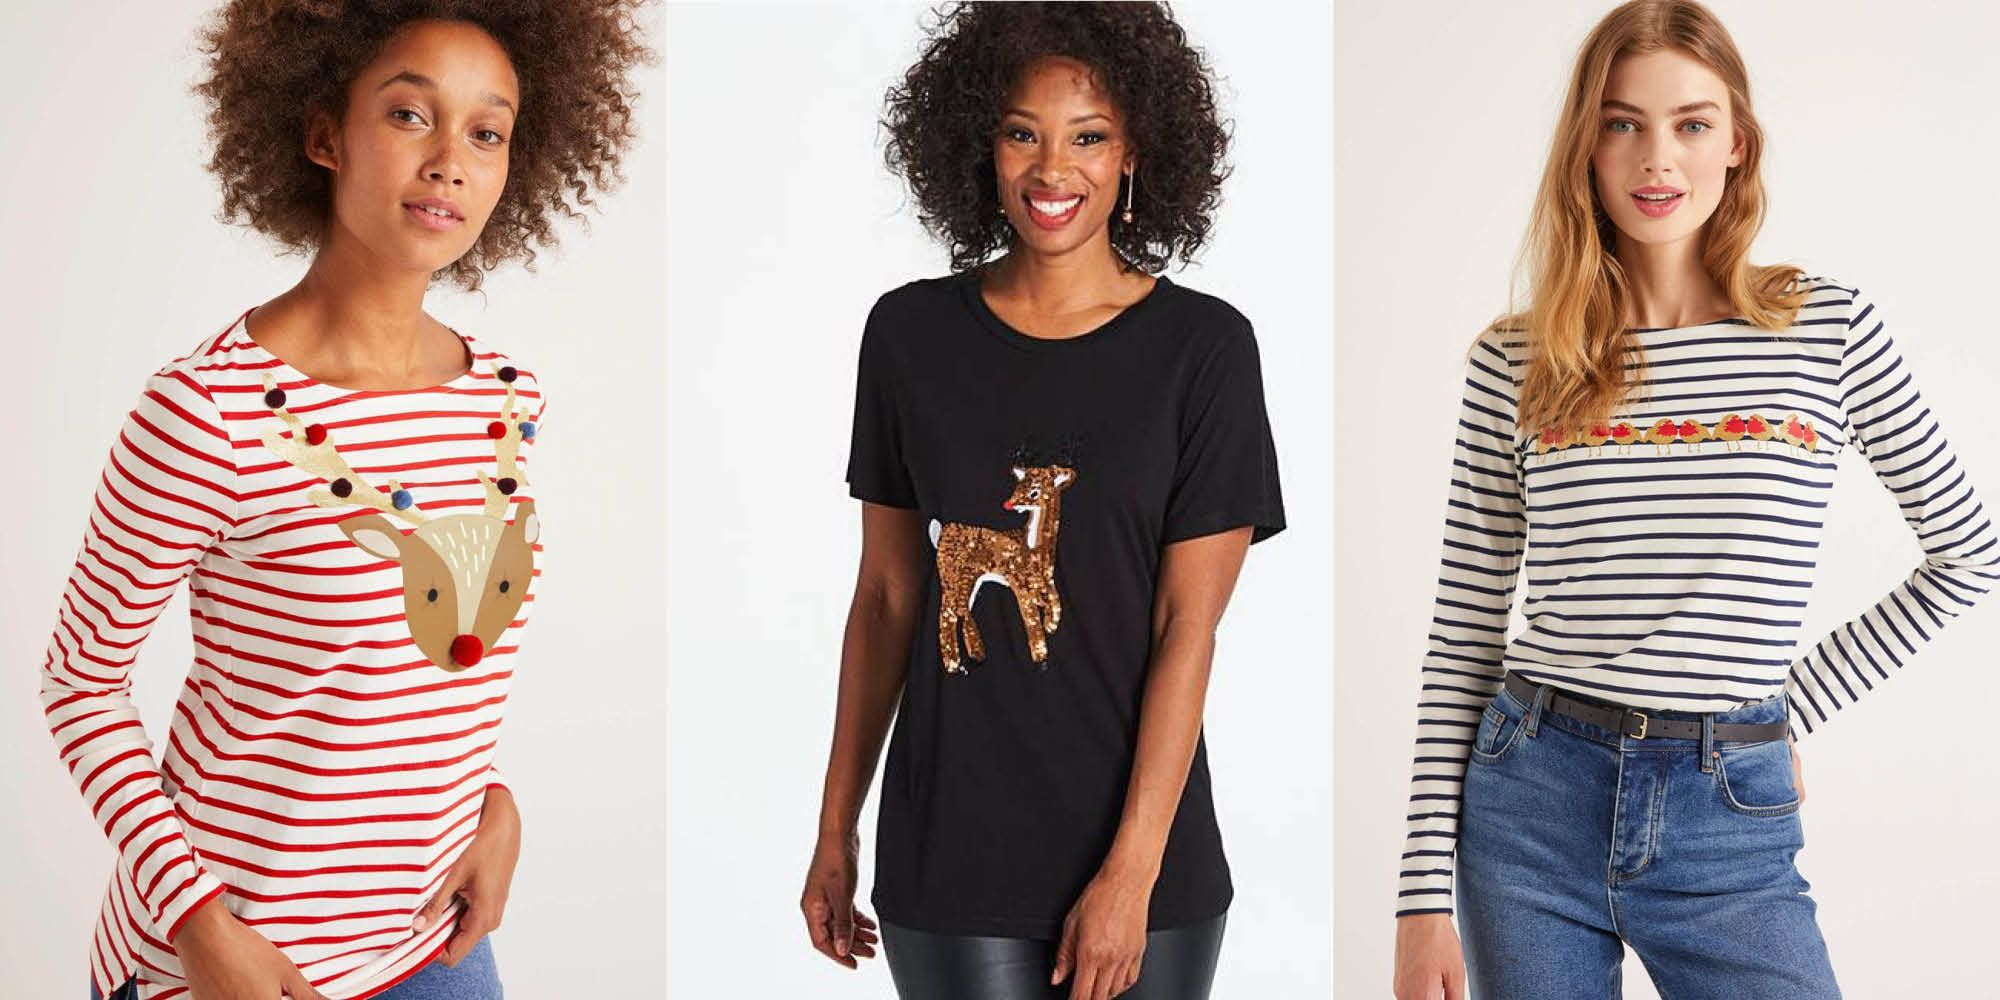 The most stylish Christmas t-shirts you can buy this year